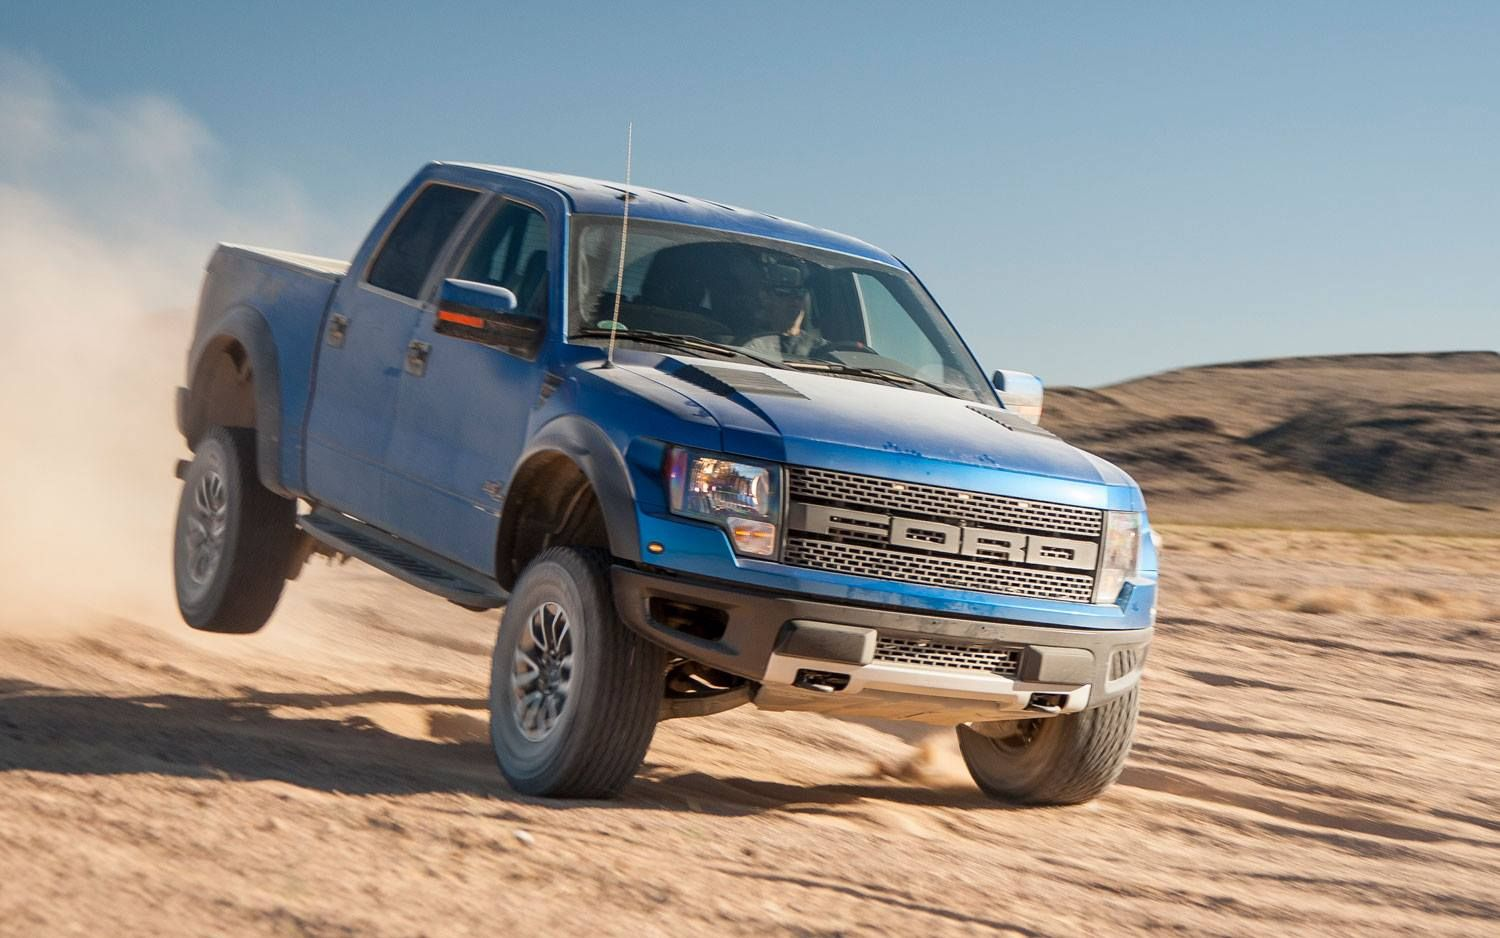 Blue ford raptor svt truck out having fun offroad